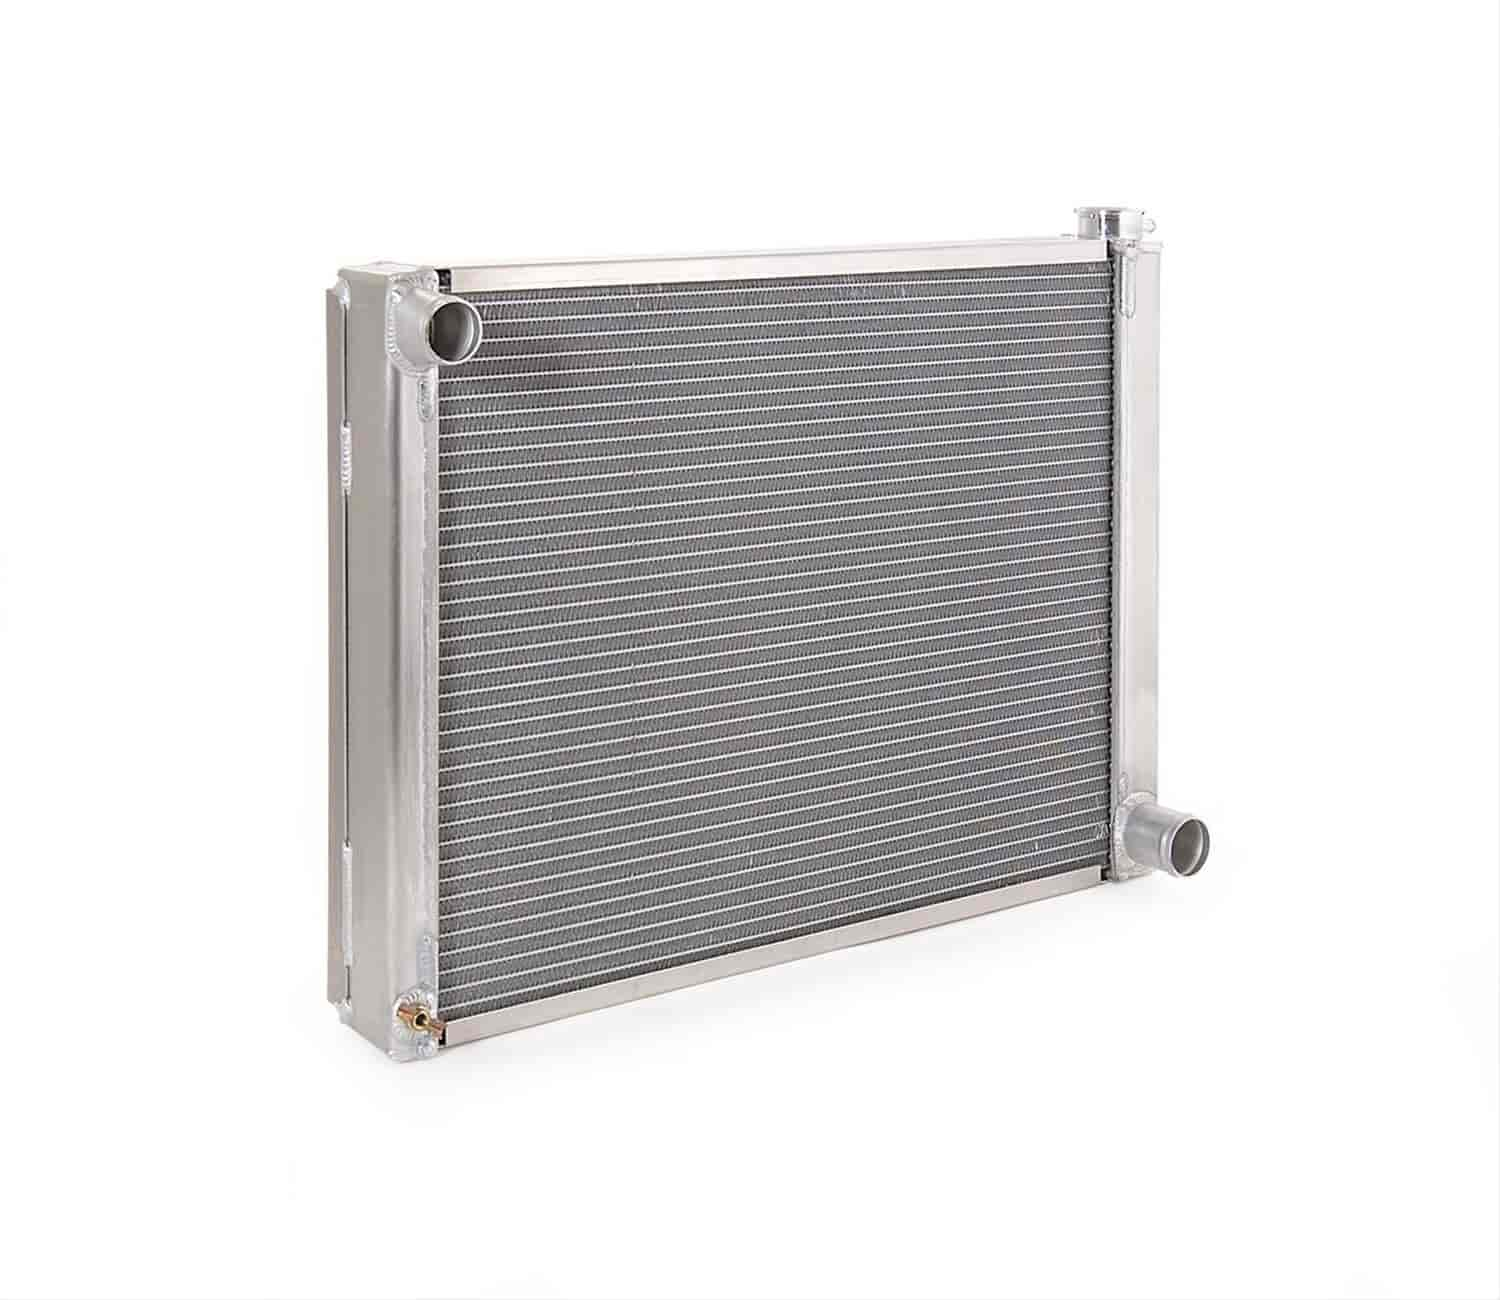 Be Cool Radiators 61012 - Be Cool Chevrolet Car Direct-Fit Aluminum Radiators